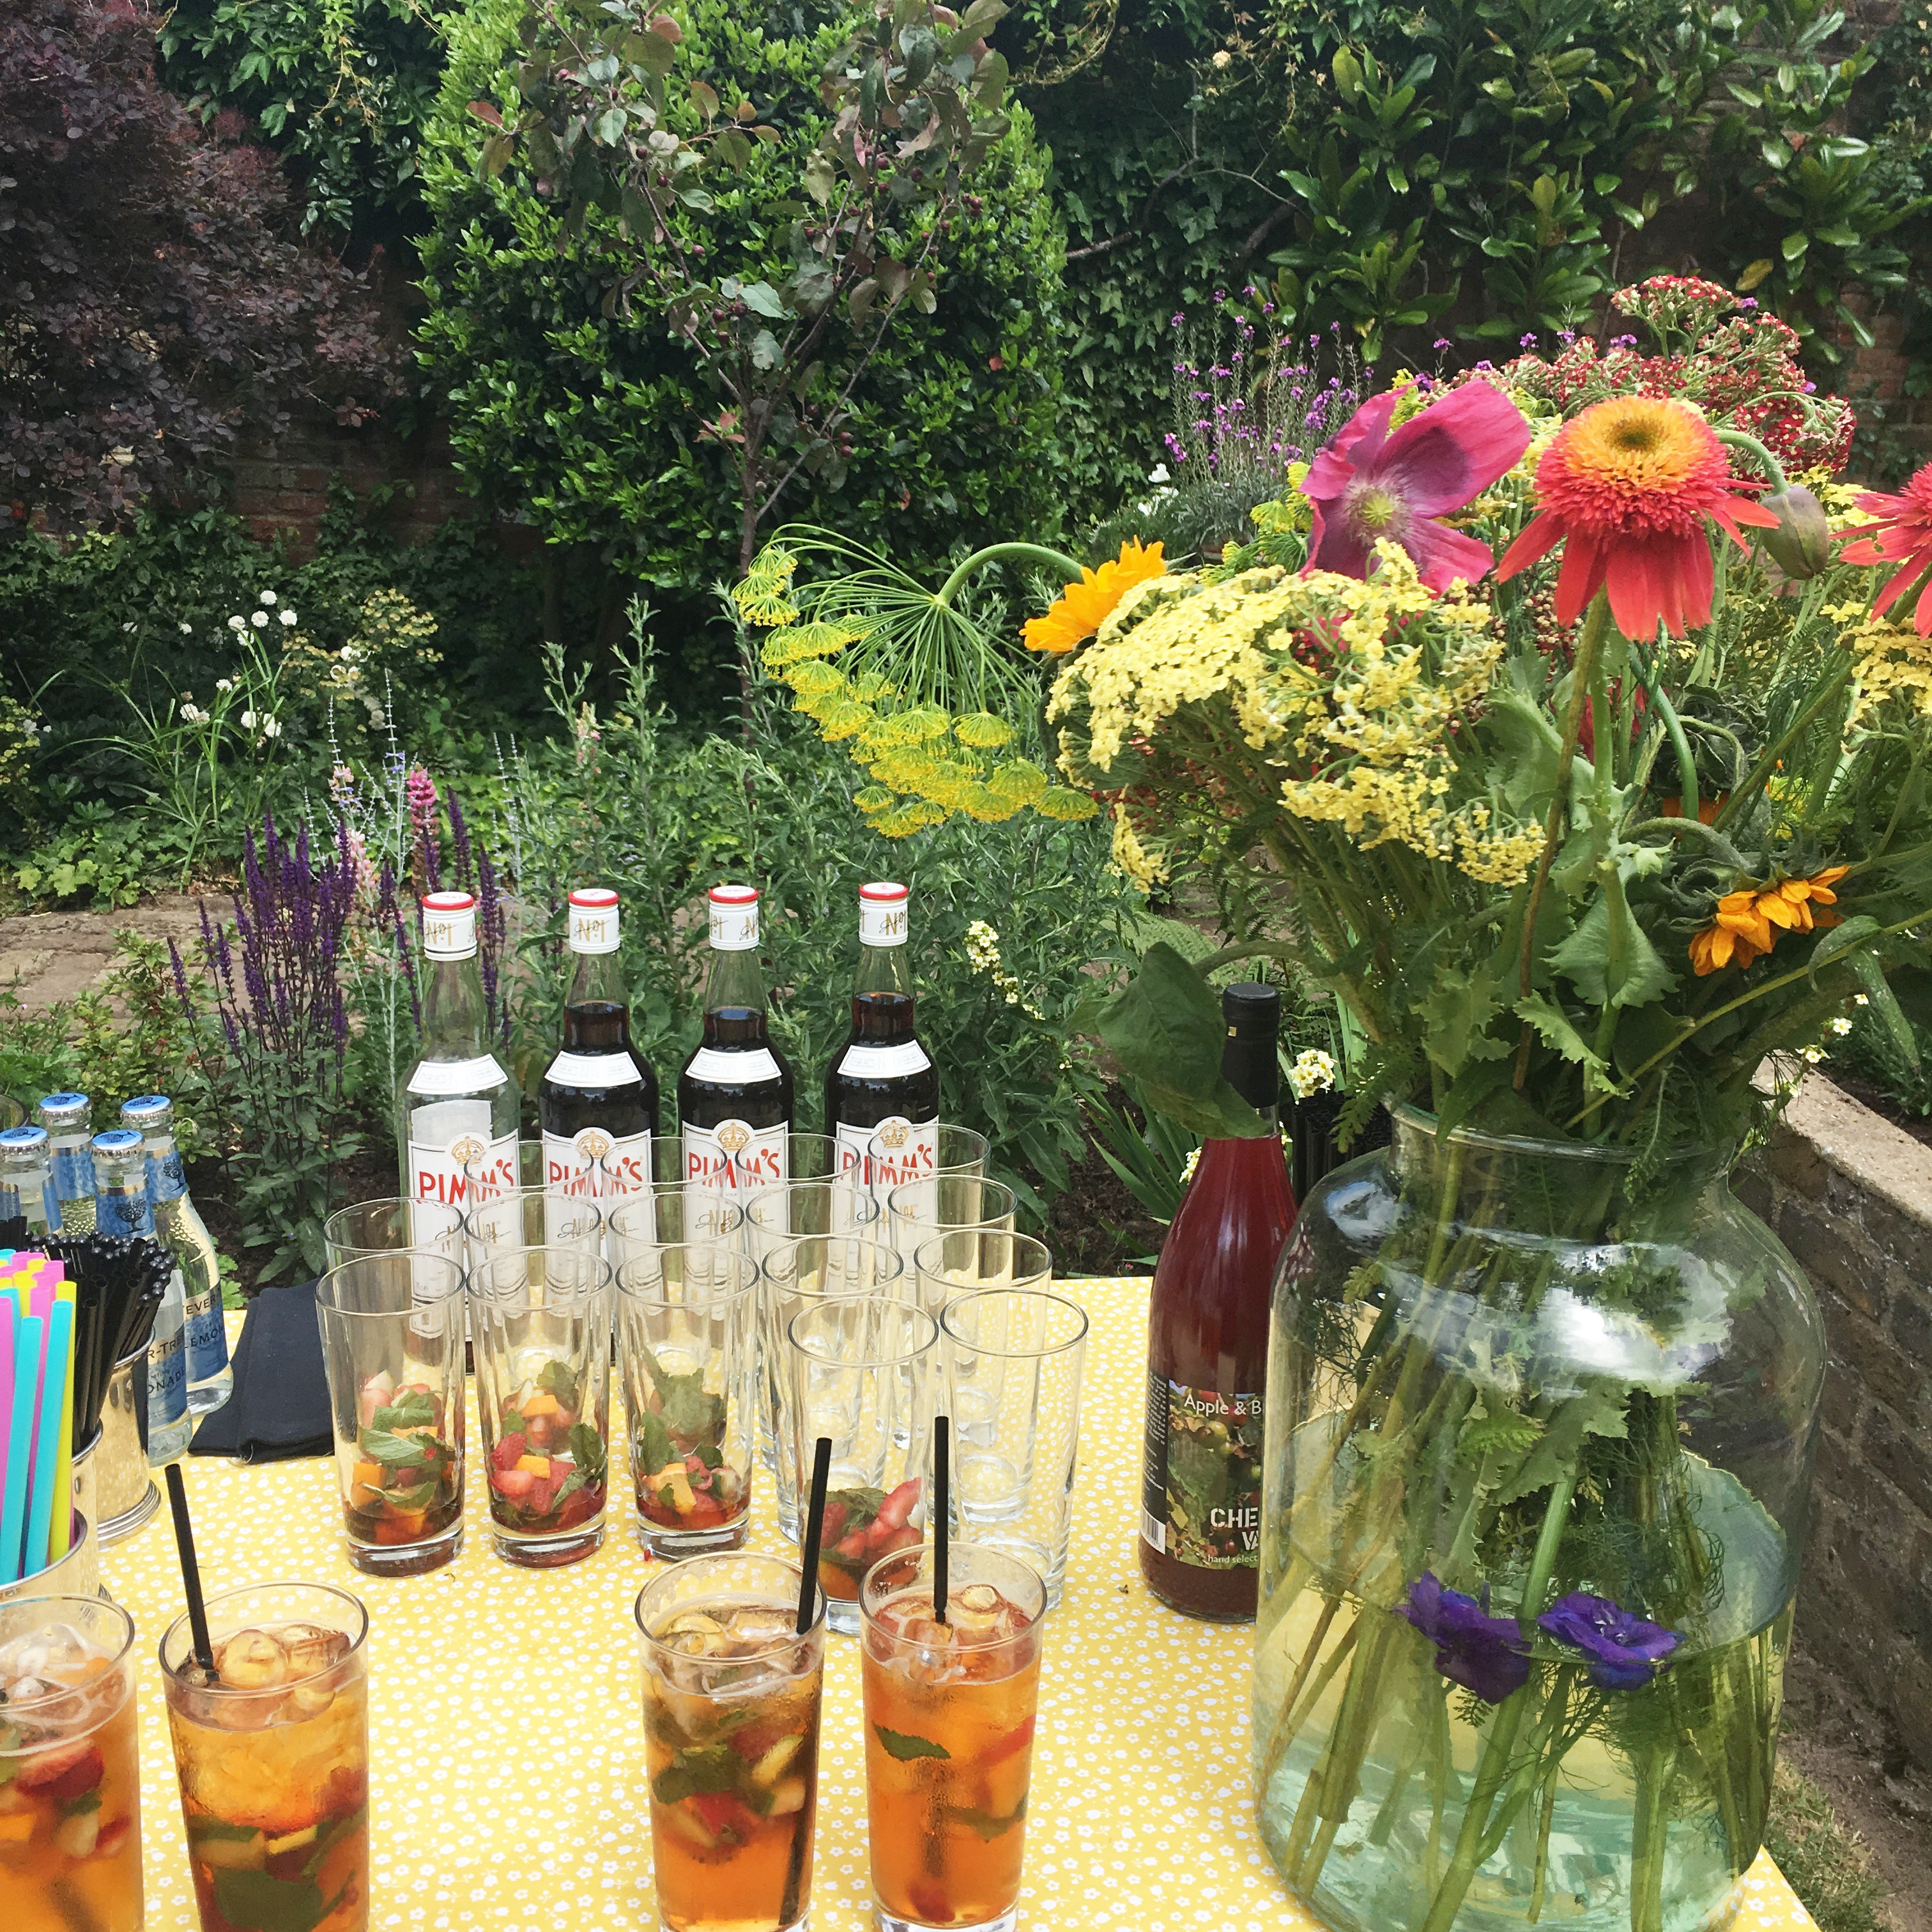 The drinks station was constantly busy with juice, cordials and chilled water filled with cucumber ribbons and mint for the kids and Pimms for the grown-ups